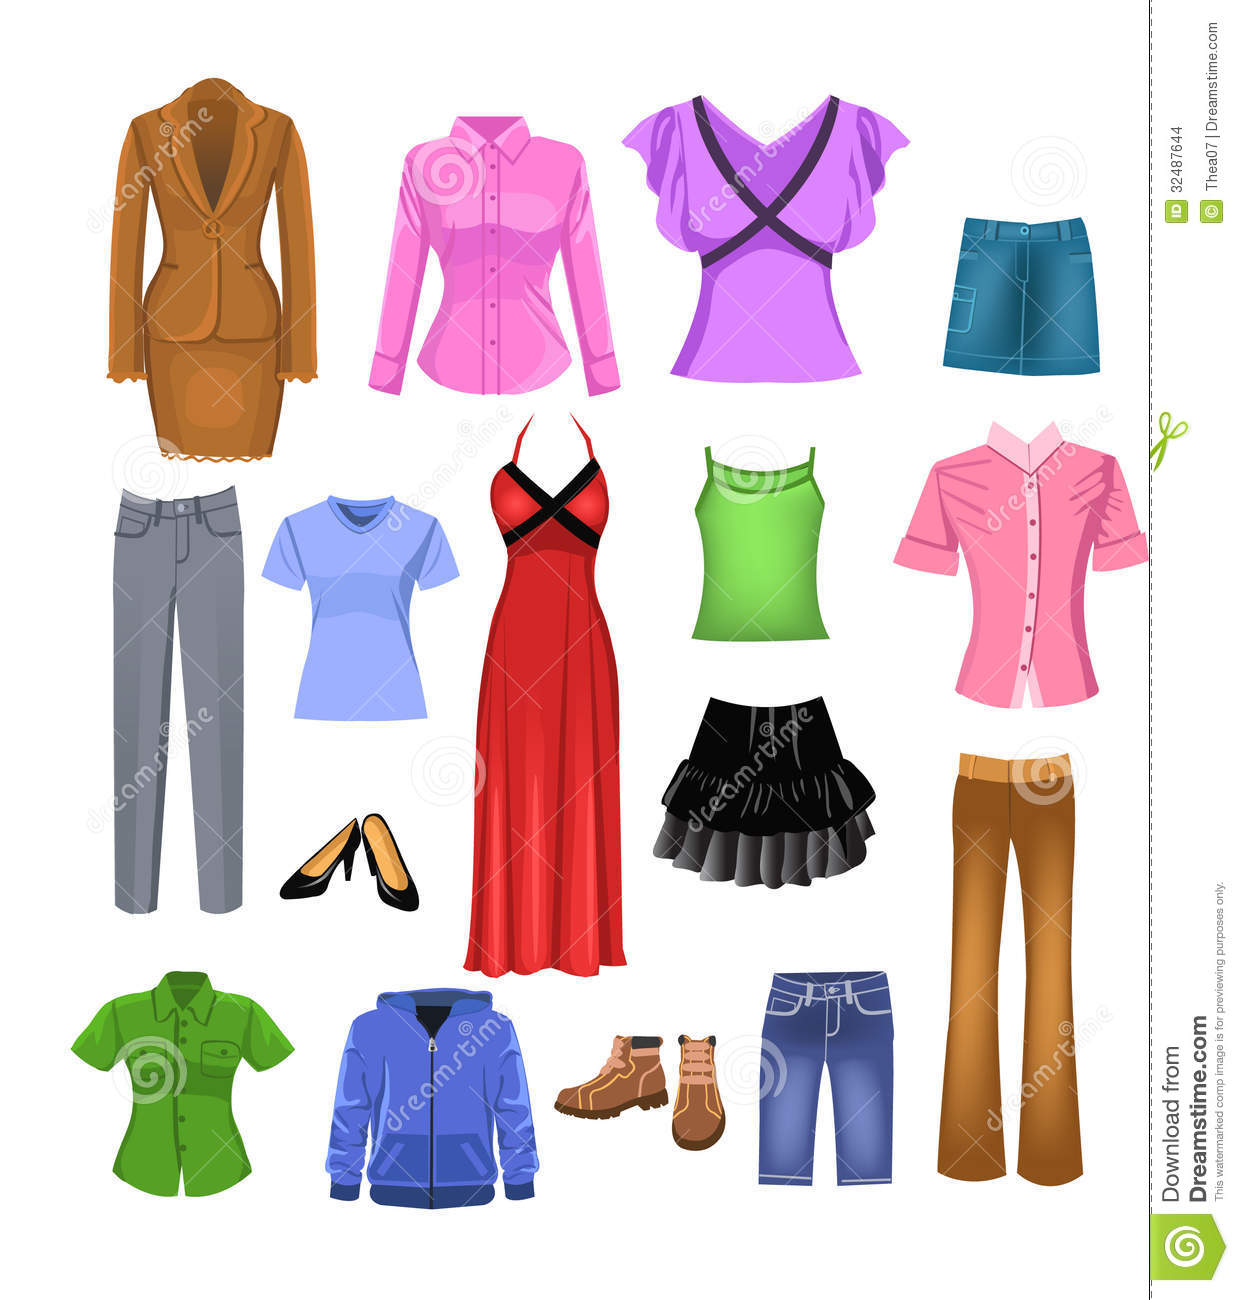 Women clothes clipart 5 » Clipart Station.